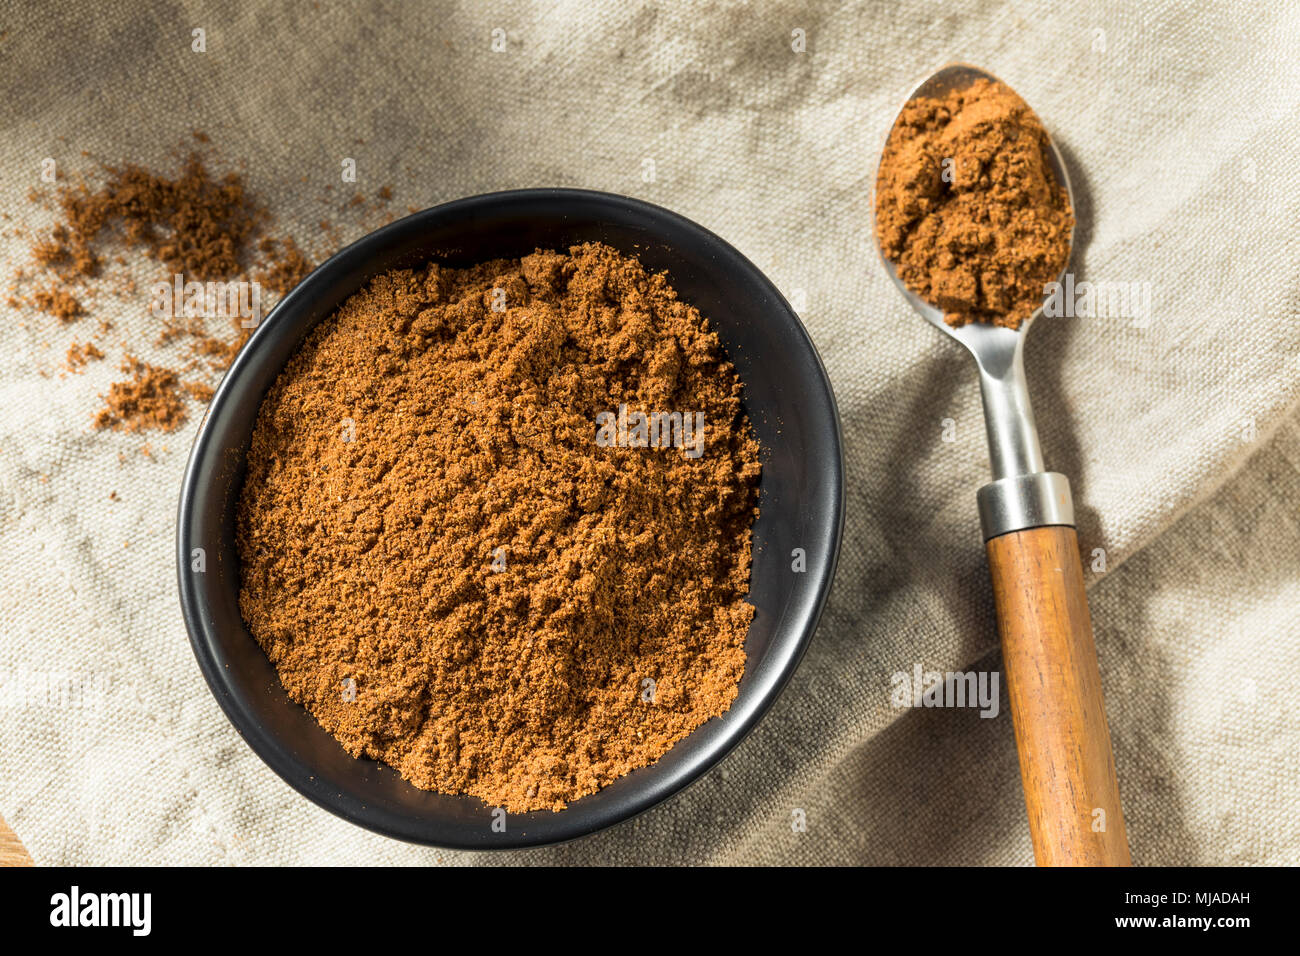 Garam Masala bio épices indiennes dans un bol Photo Stock